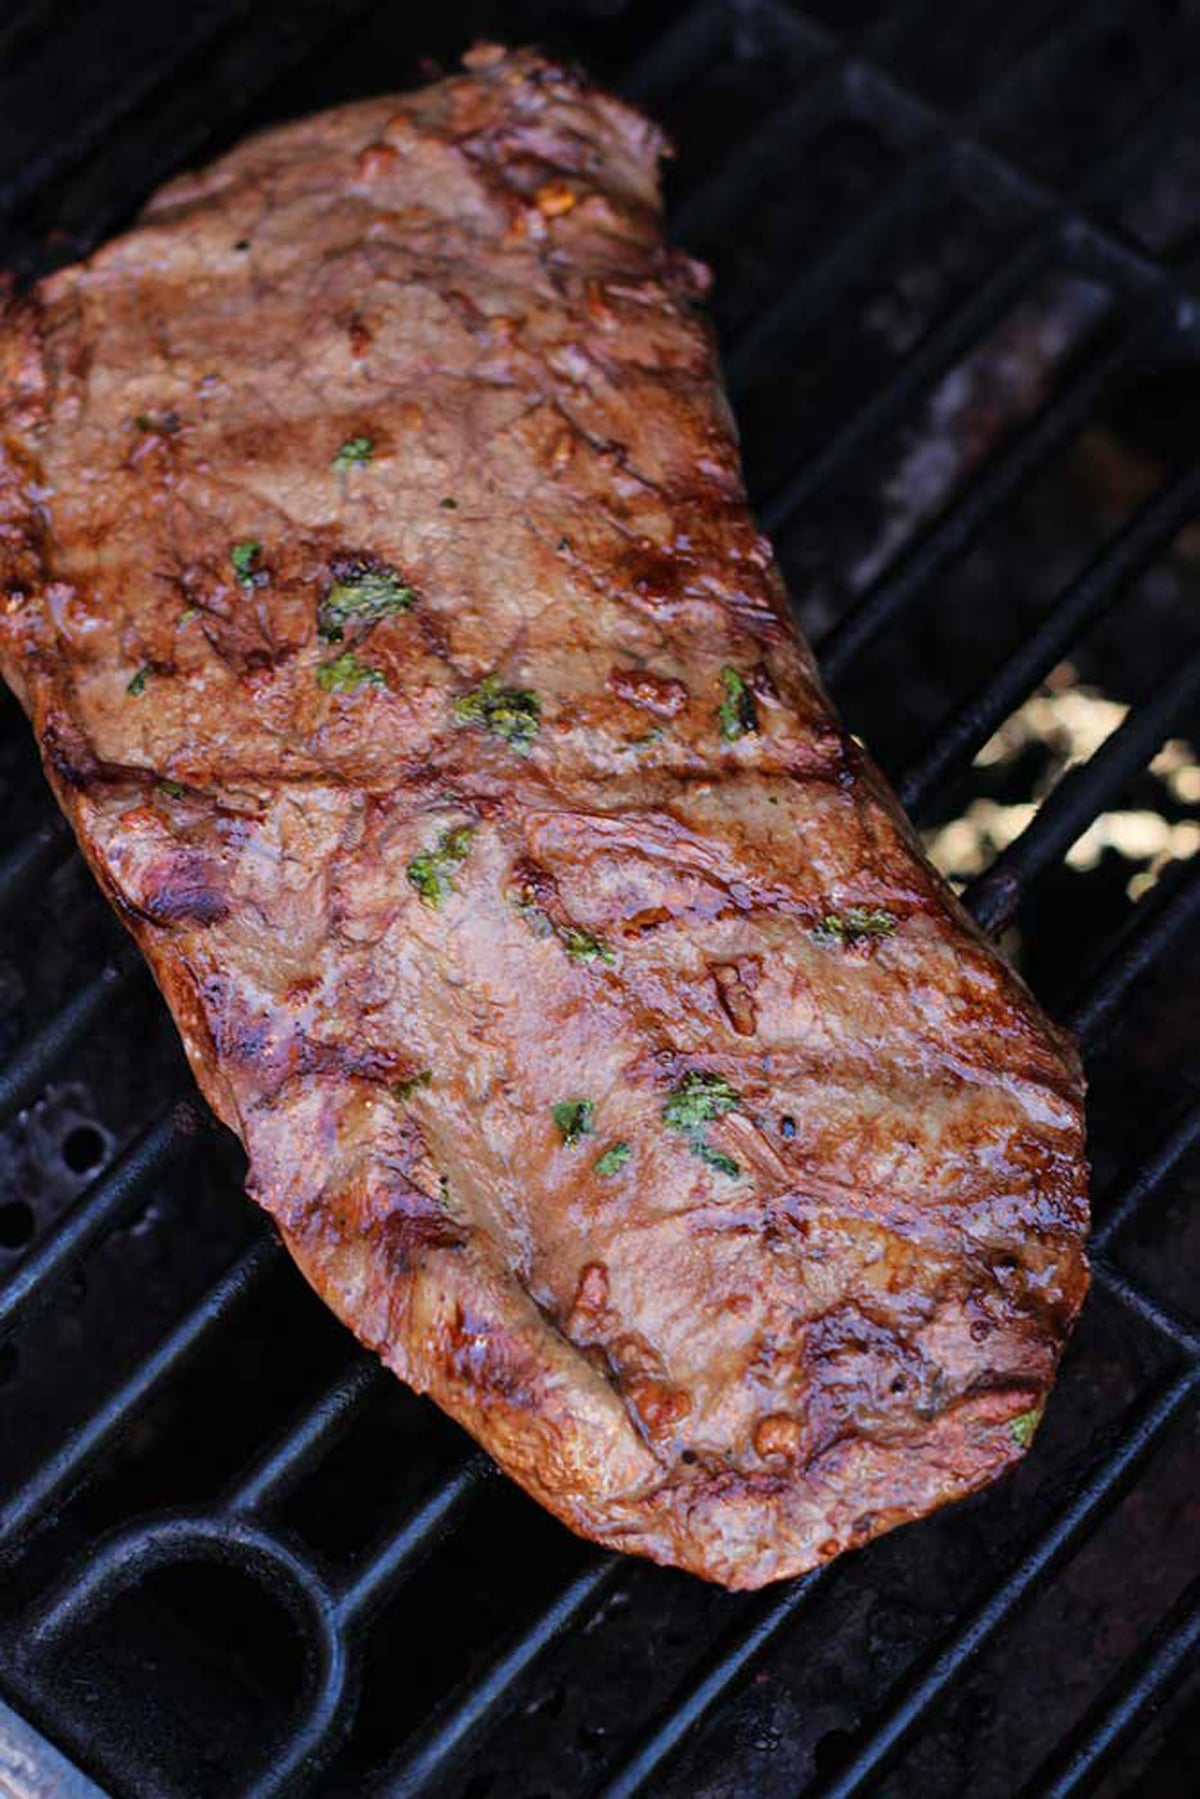 Flank Steak on a grill, seared and topped with fresh parsley.